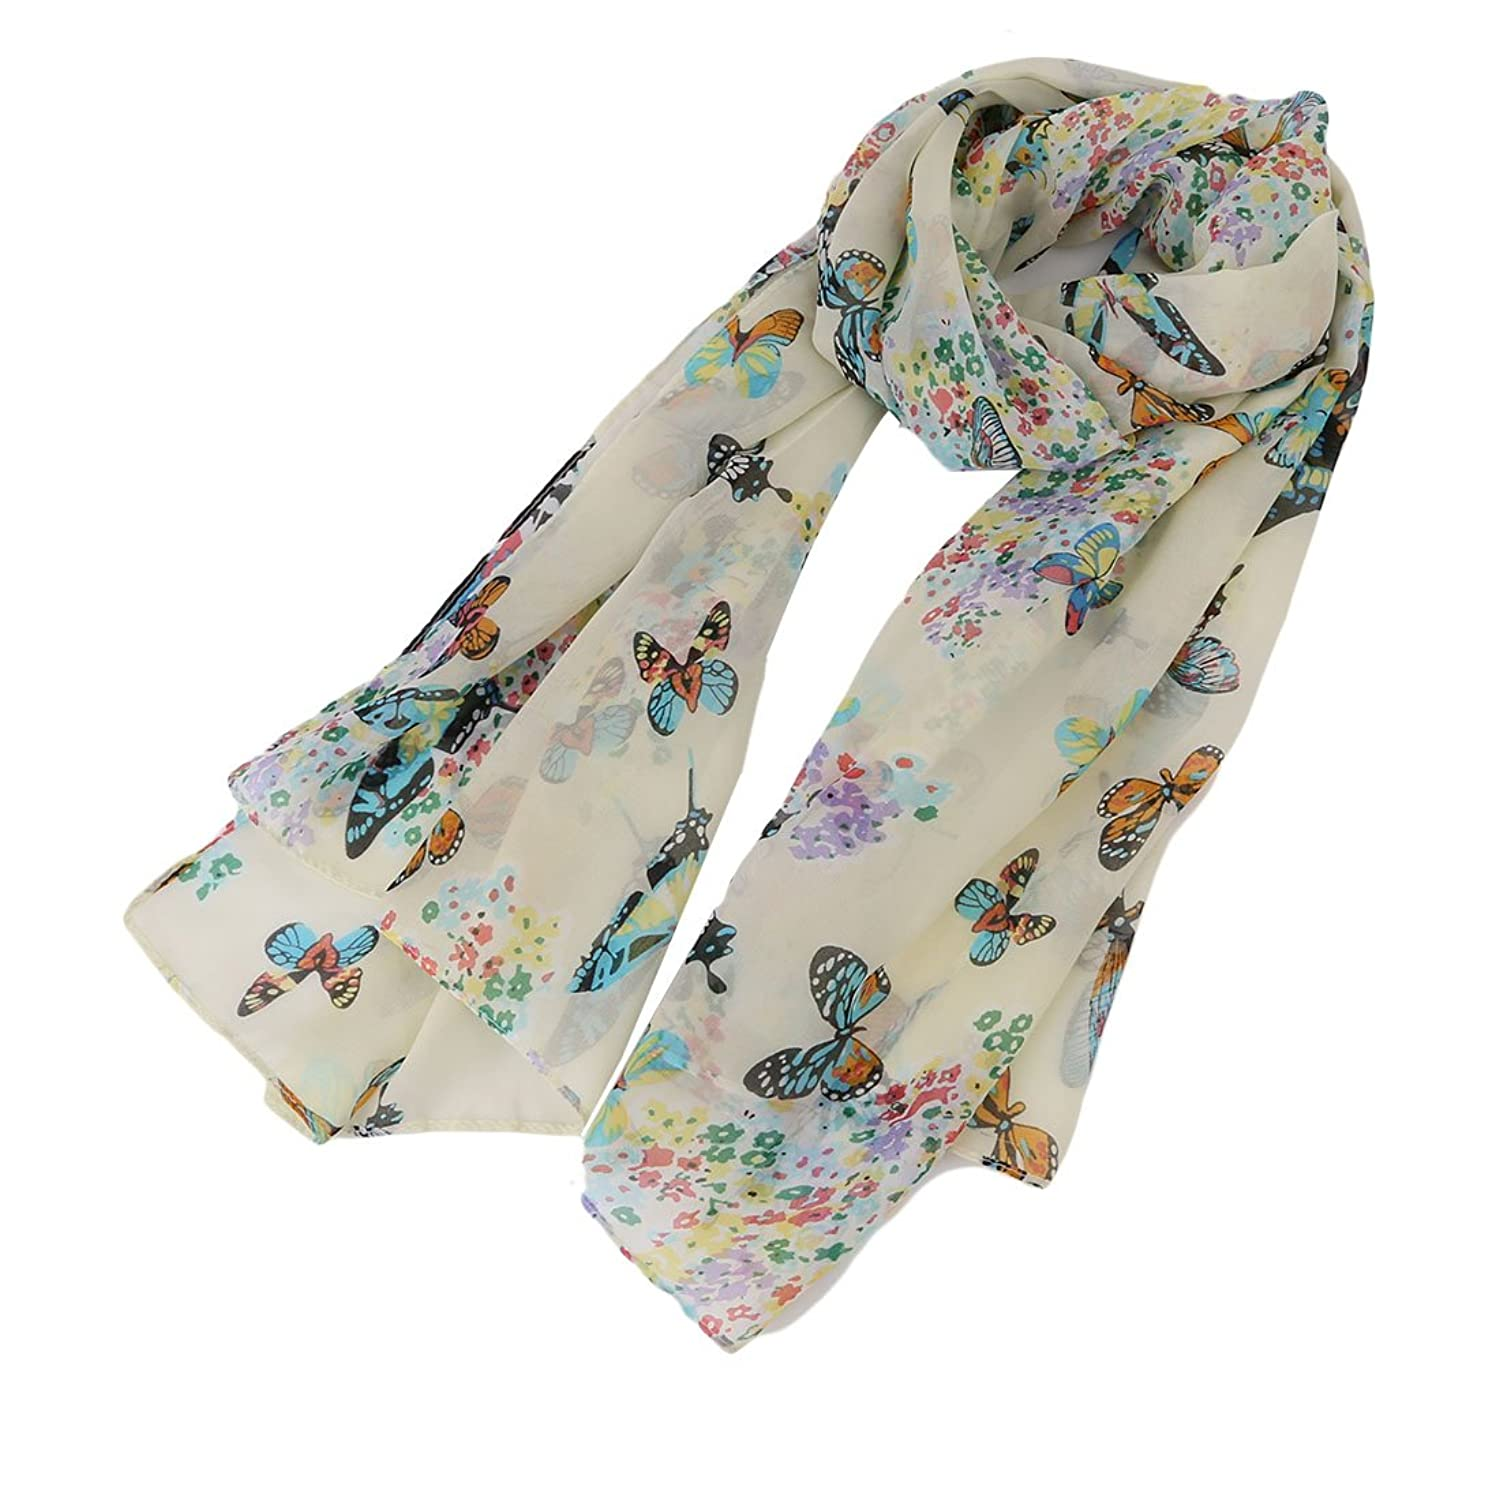 Womens Scarves And Wraps Pashmina Kerudung Pk2 23 Ejy Women Lady Chiffon Butterfly Print Scarf Neck Shawl Soft Wrap Stole